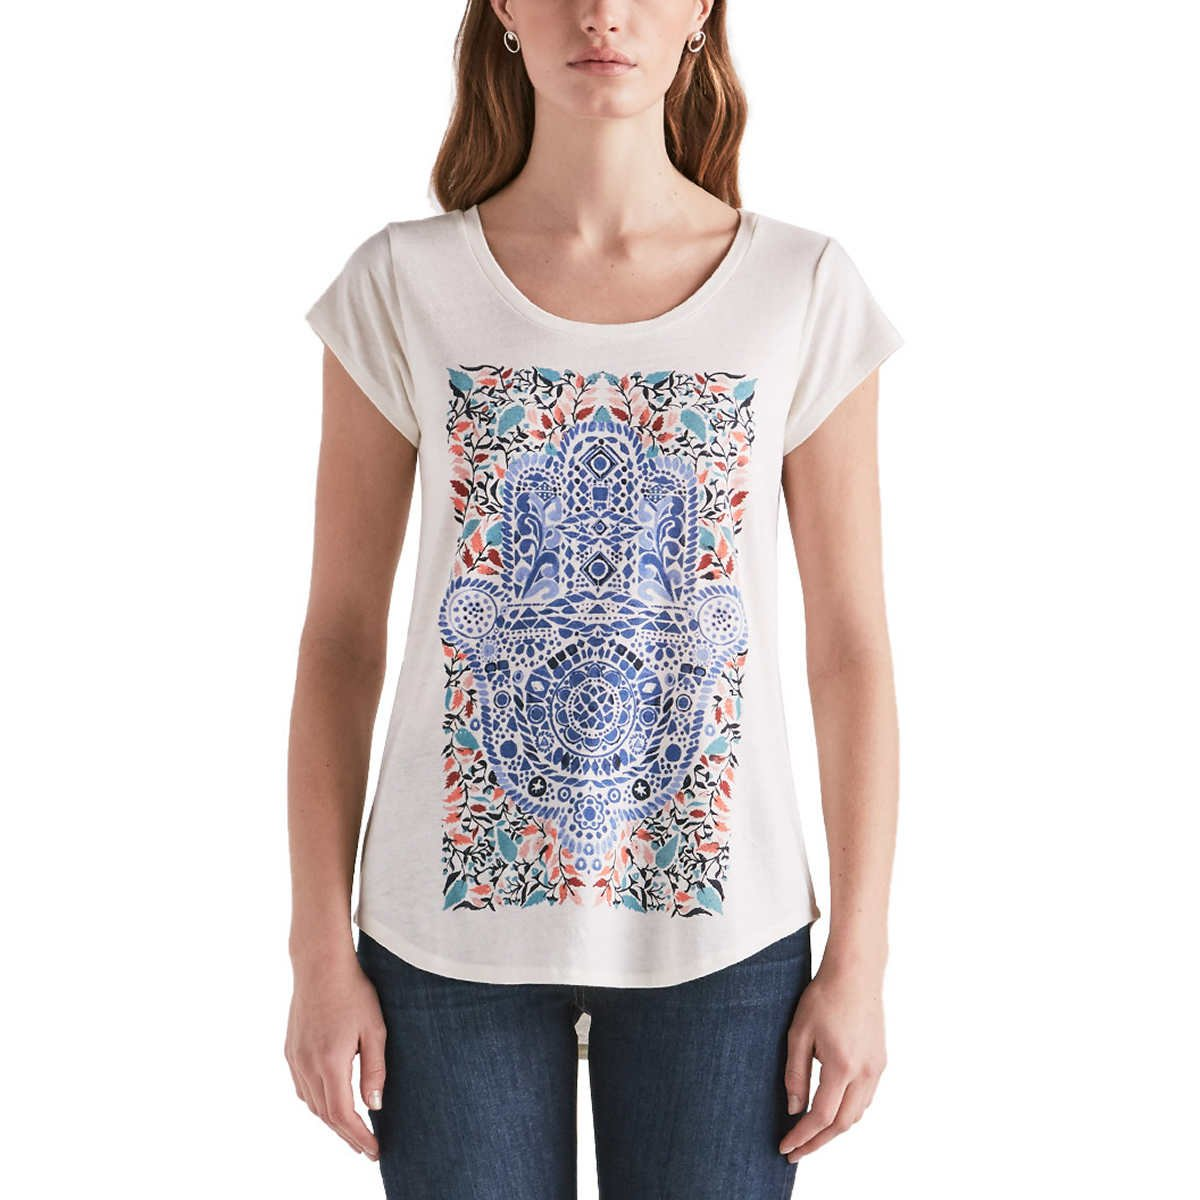 Lucky Brand Ladies Graphic Tee (Large, White Tribal Graphic Print)